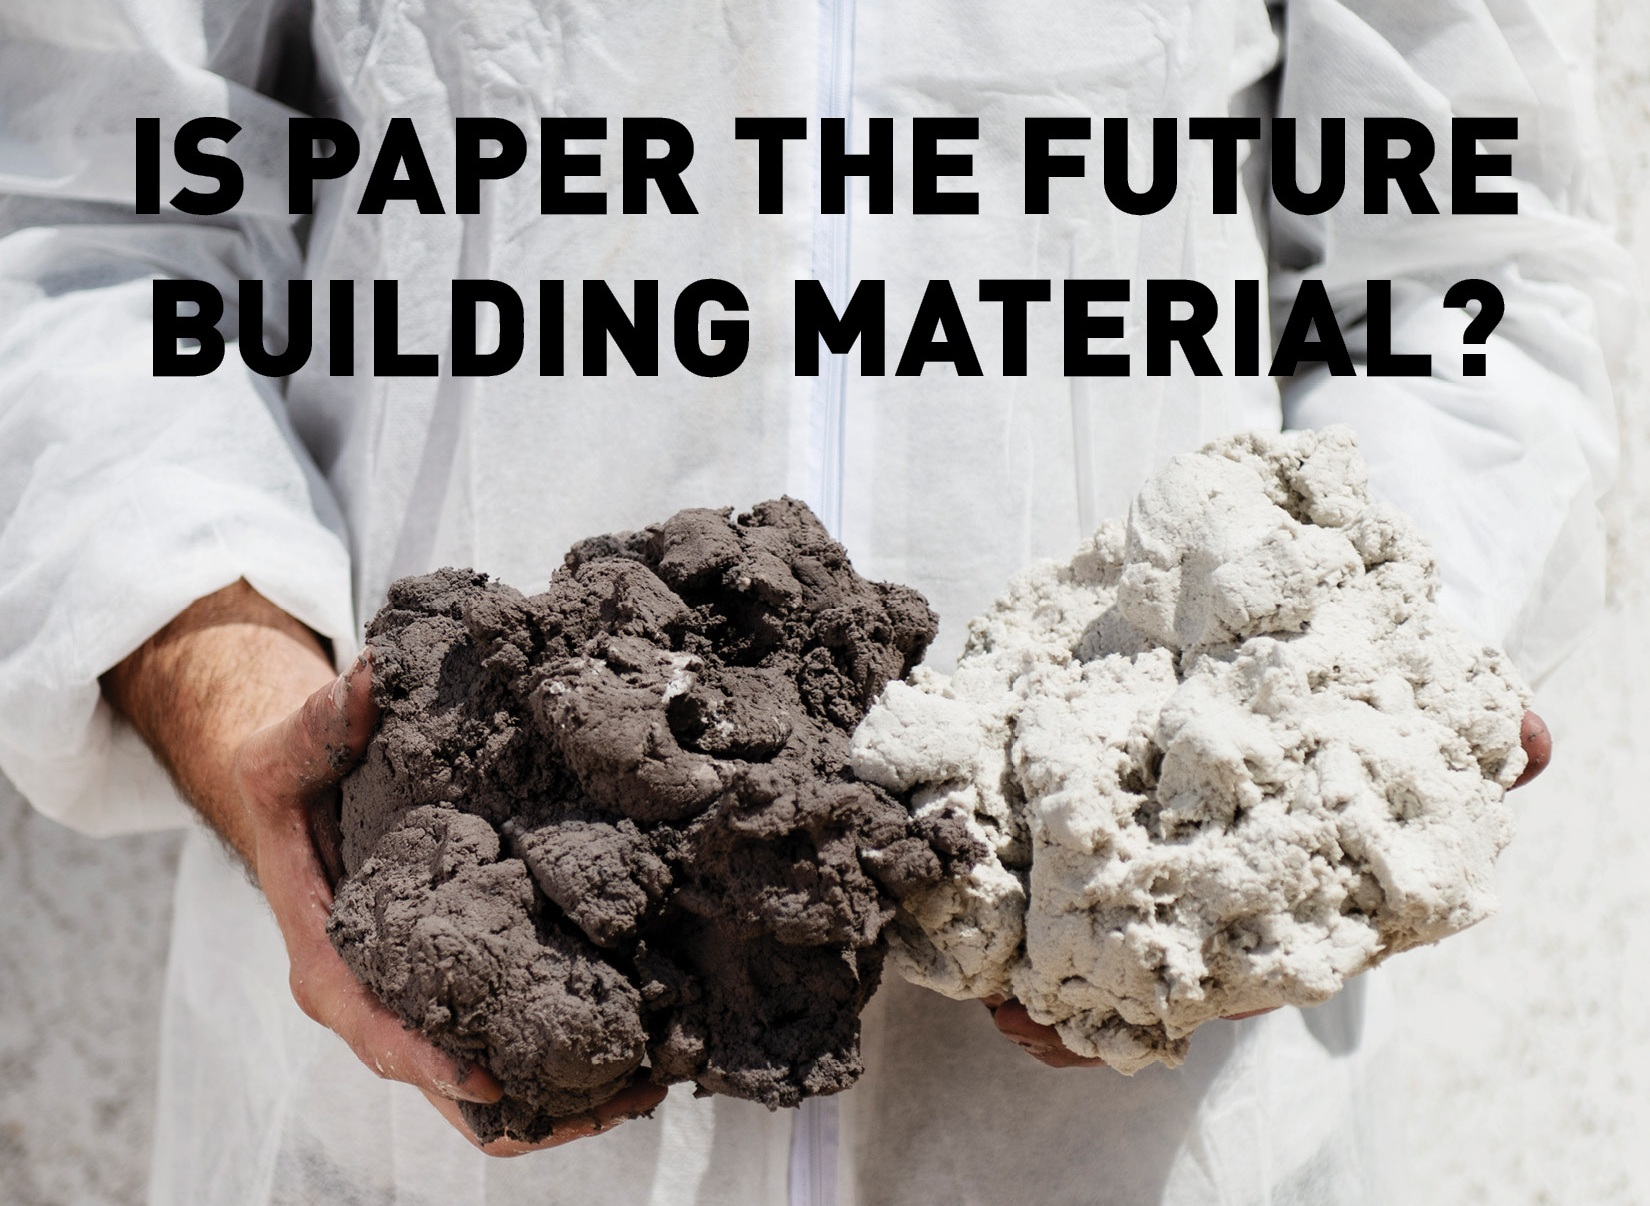 WE ARE DEVELOPING A LIGHT-WEIGHT, 100% RECYCLABLE AND BIODEGRADABLE BUILDING MODULE IN PAPER       14/03/2019   We are asking ourselves at WE architecture whether the building industry can protect our common resources instead of wearing them down. If ambitious architecture change the building industry for the common good - we hope so! In October, WE Architecture received 200.000 DKK from the Danish Arts foundation (Statens Kunstfond) to develop a building system based on papier mâché in collaboration with an Italian inventor who has developed a method, where recycled paper is treated with state-of-the-art technology making it non-inflammable and water-resistant. The ambition is to build a 100% biodegradable house entirely out of recycled wood and paper, demonstrating qualities that the papier mâché material provides, as for example its translucency and super lightweight construction.    Read more HERE.